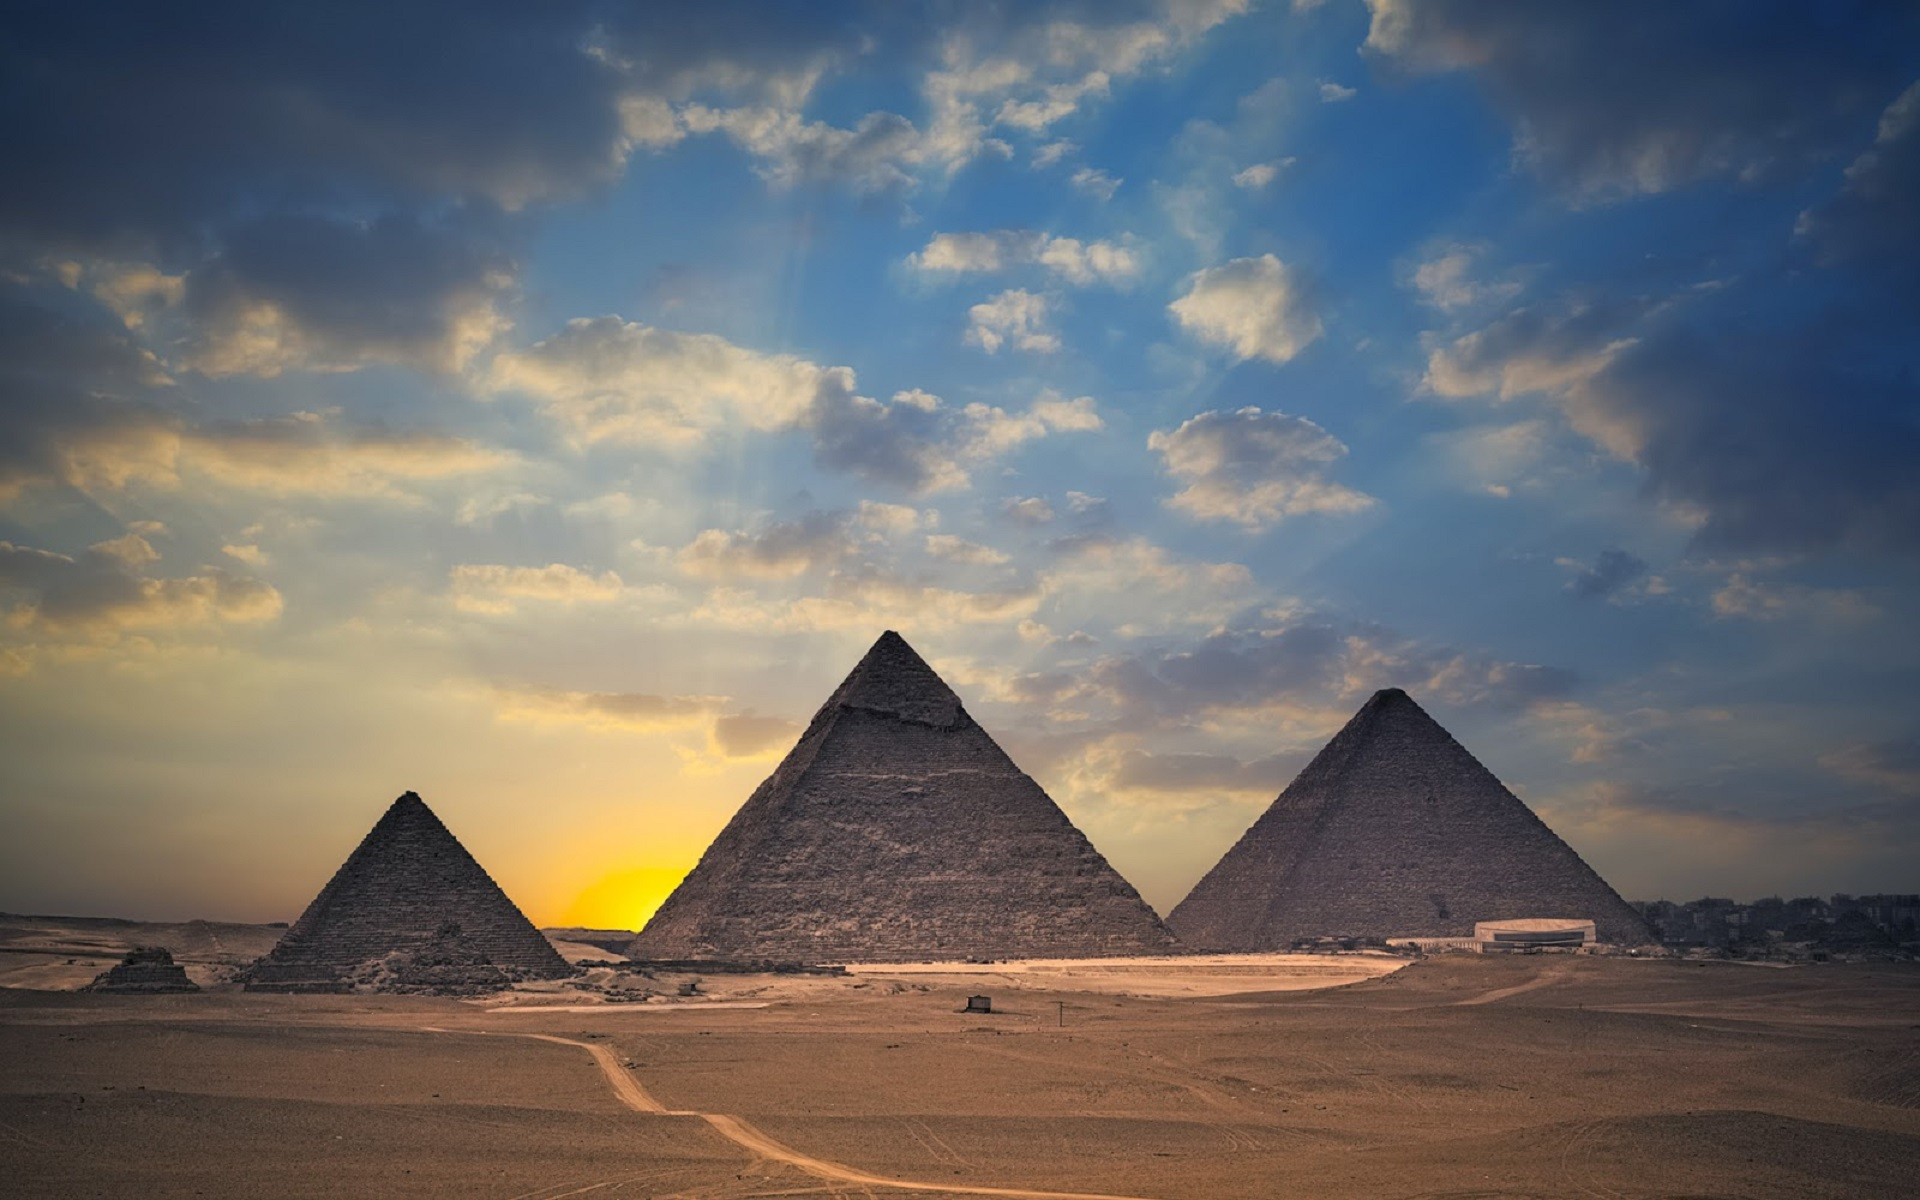 pyramids wallpaper background, wallpapers